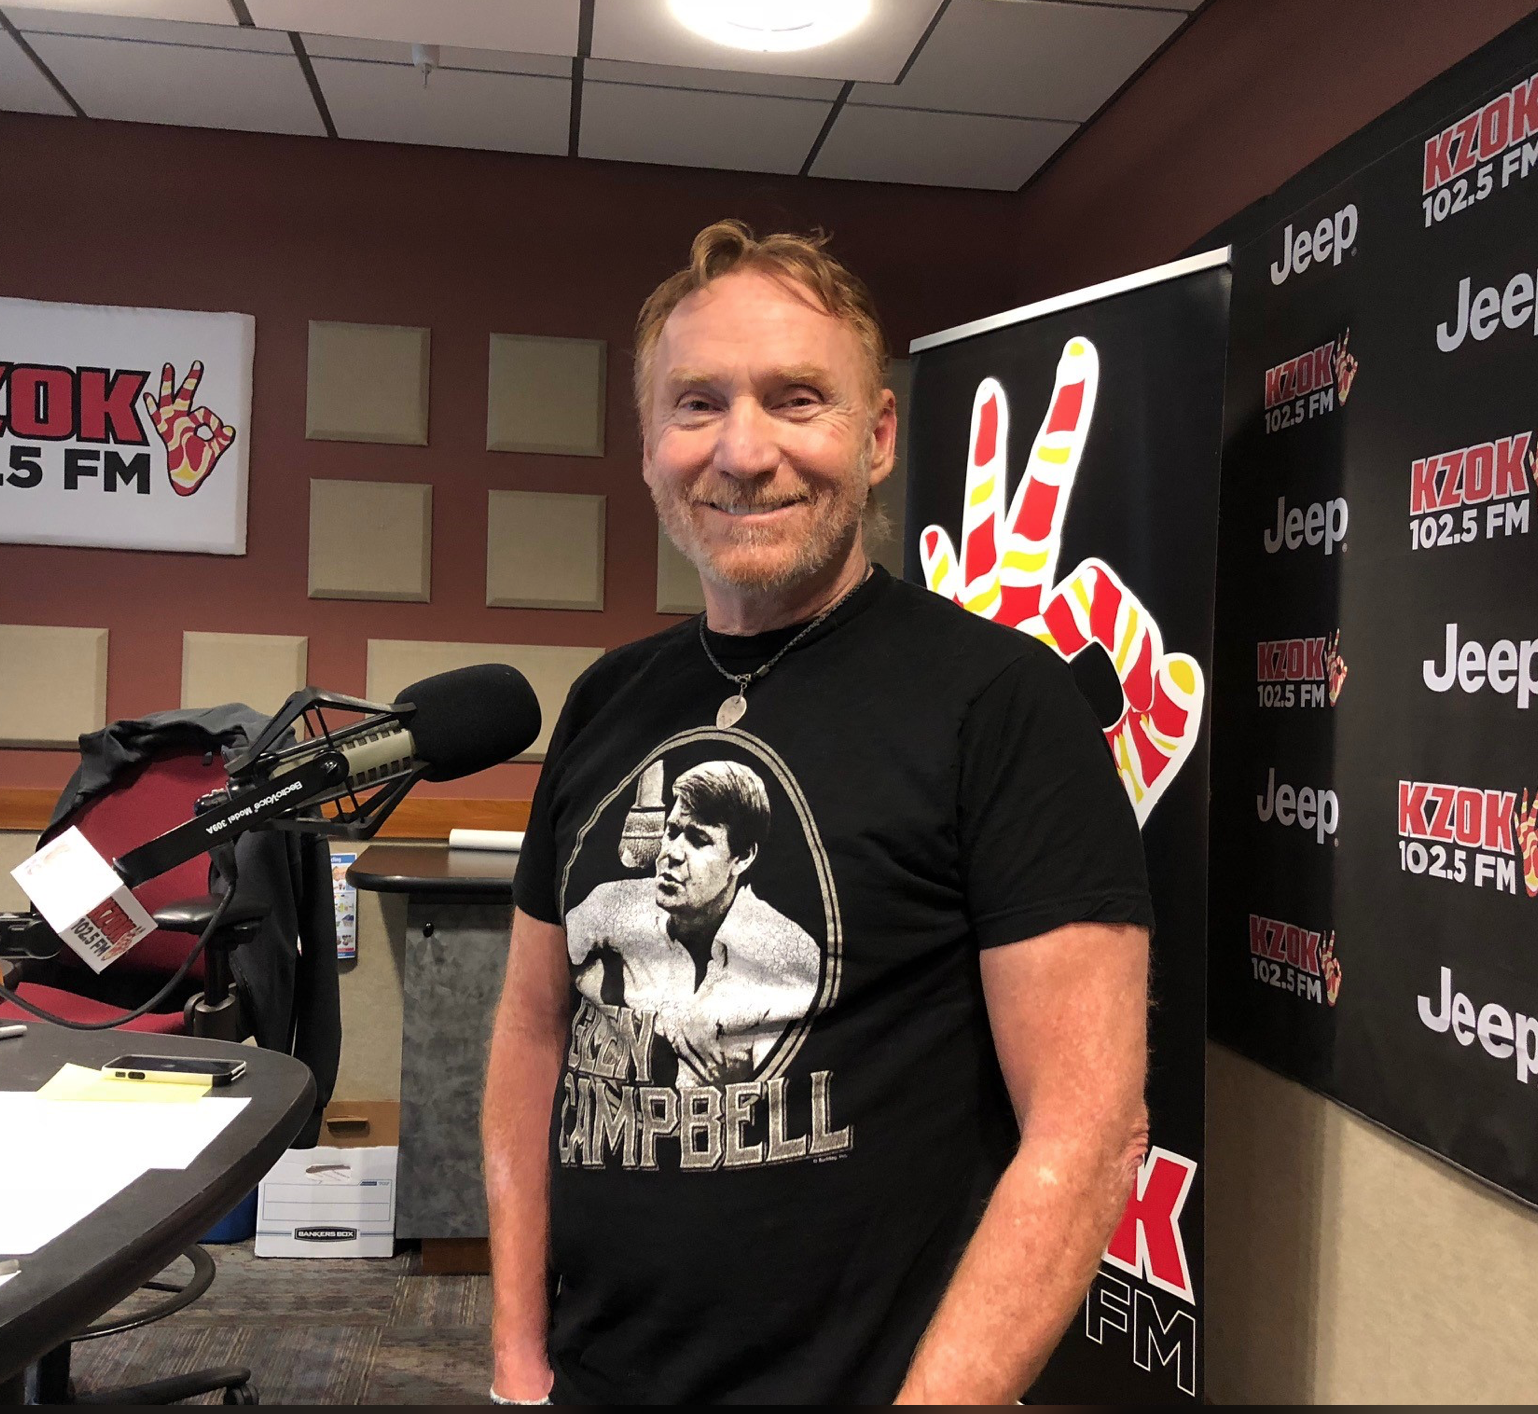 We're all working from home these days, including Seattle based DJ/actor/musician Danny Bonaduce. He became a bona fide star in the 1970's thanks to his role as wisecracking middle kid 'Danny Partridge' on the hit show 'The Partridge Family.' Since then, he's never slowed down! (Photo: Seattle Refined)<br><p></p>